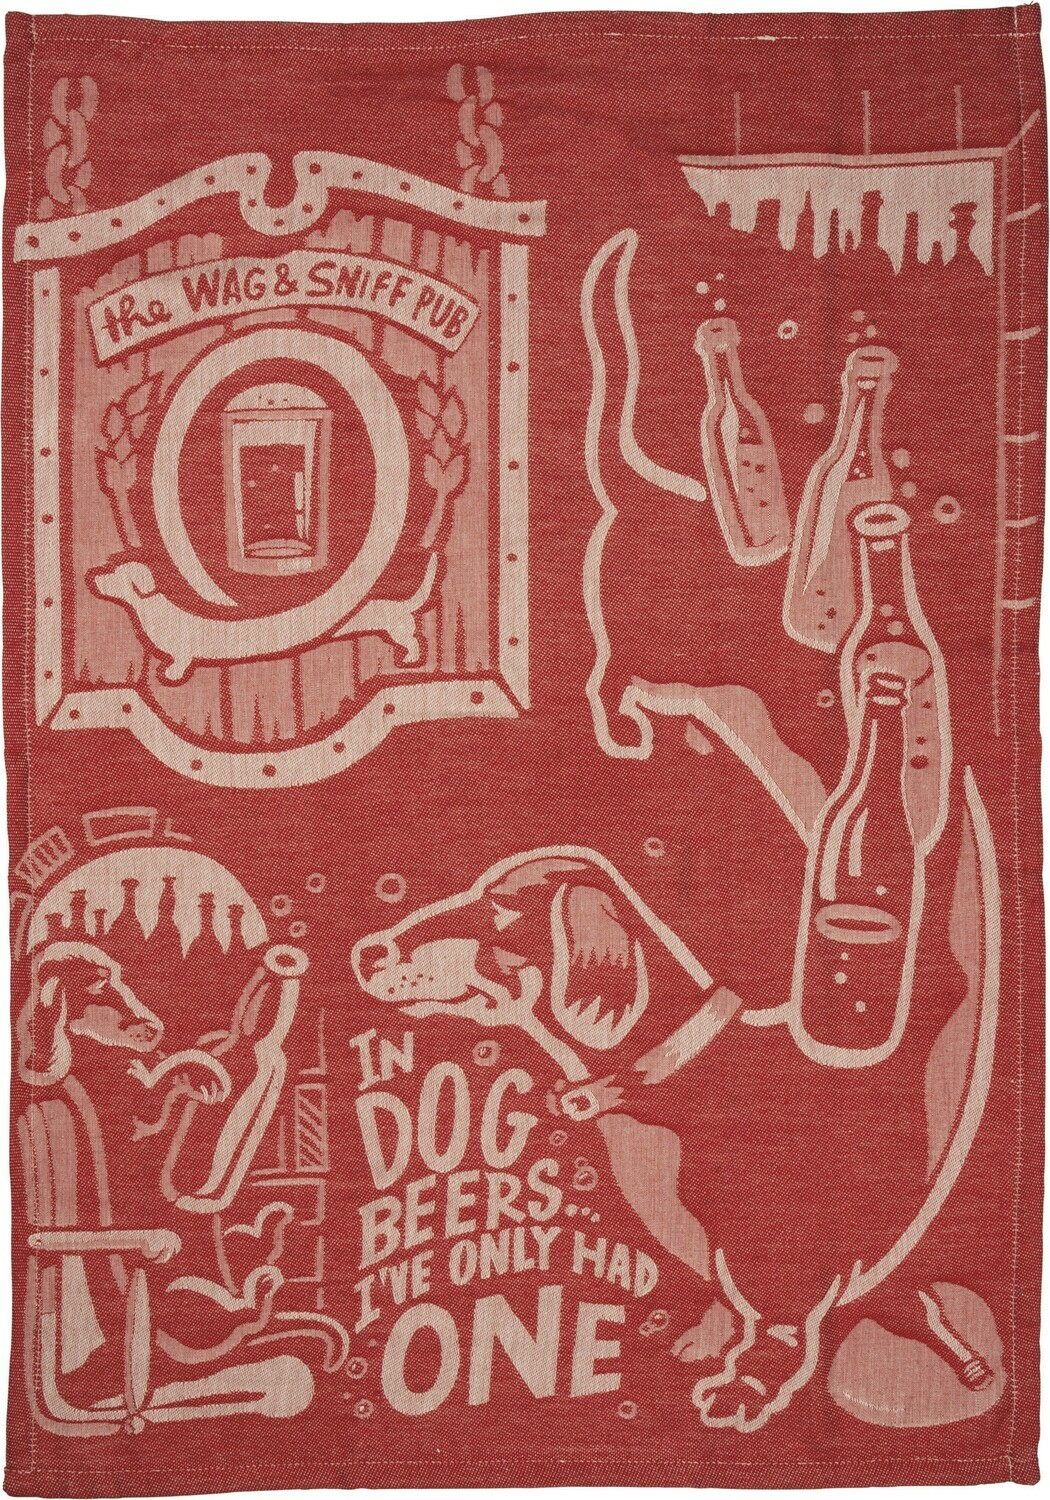 Dish Towel; In Dog Beers.....